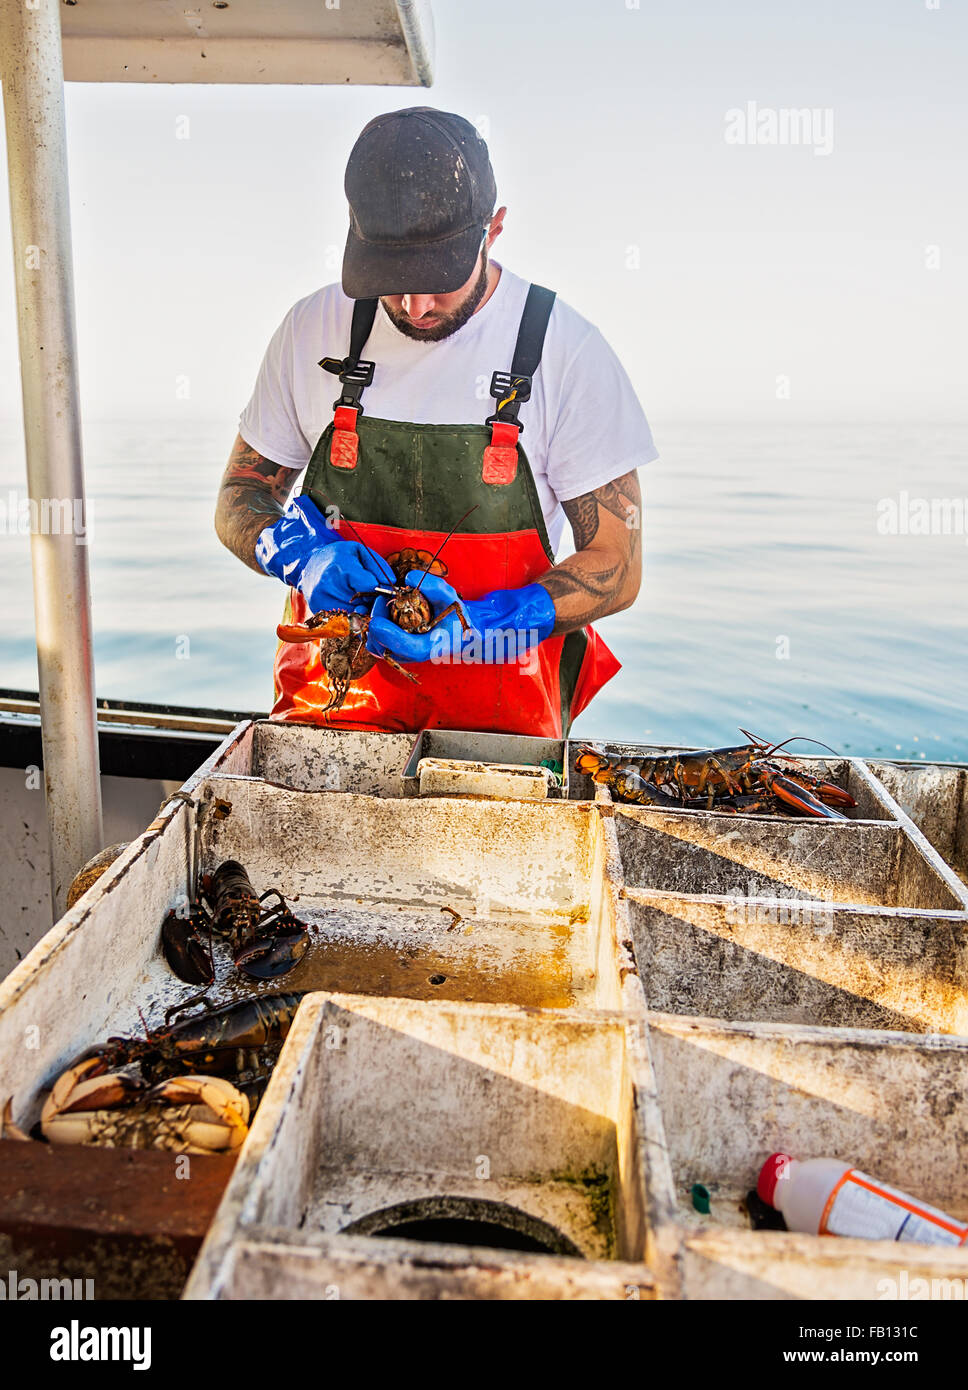 Fisherman measuring lobster - Stock Image